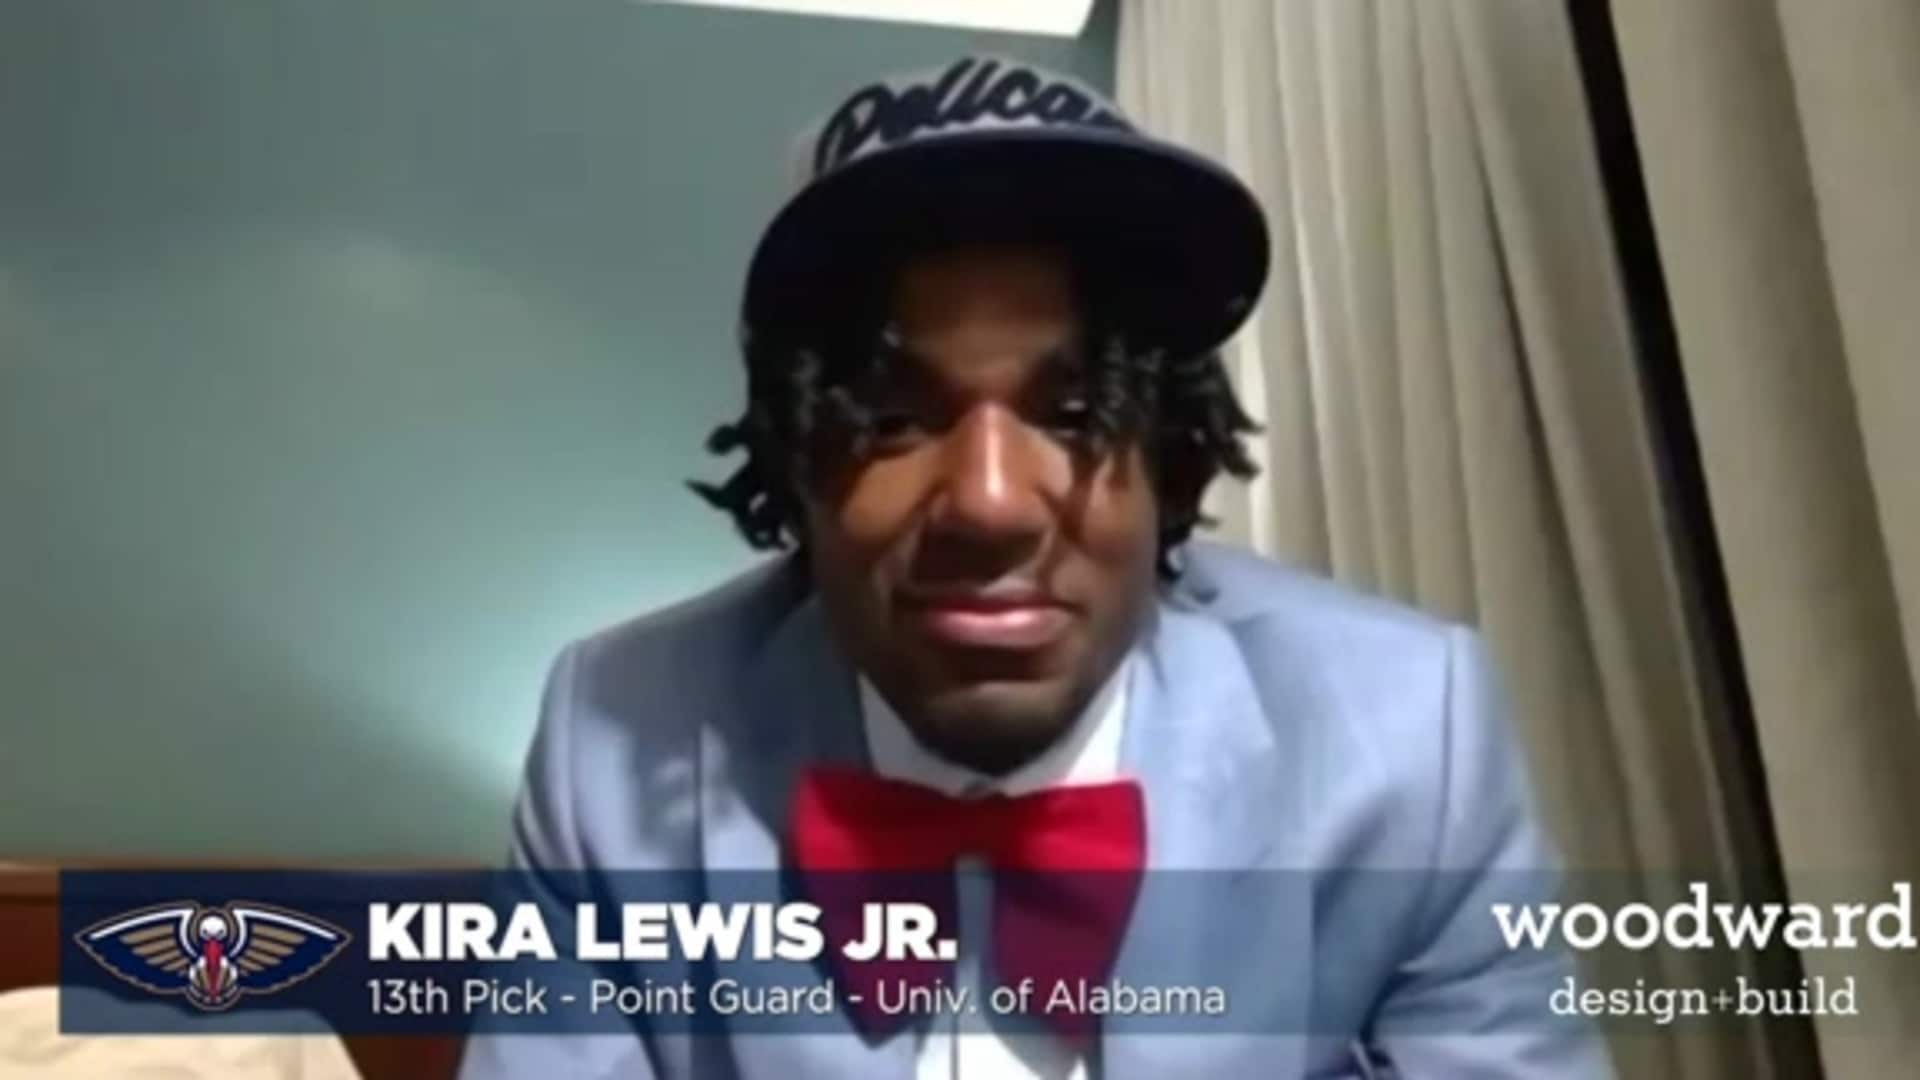 Pelicans Draft Interviews: Kira Lewis Jr.'s first interview as a Pelican